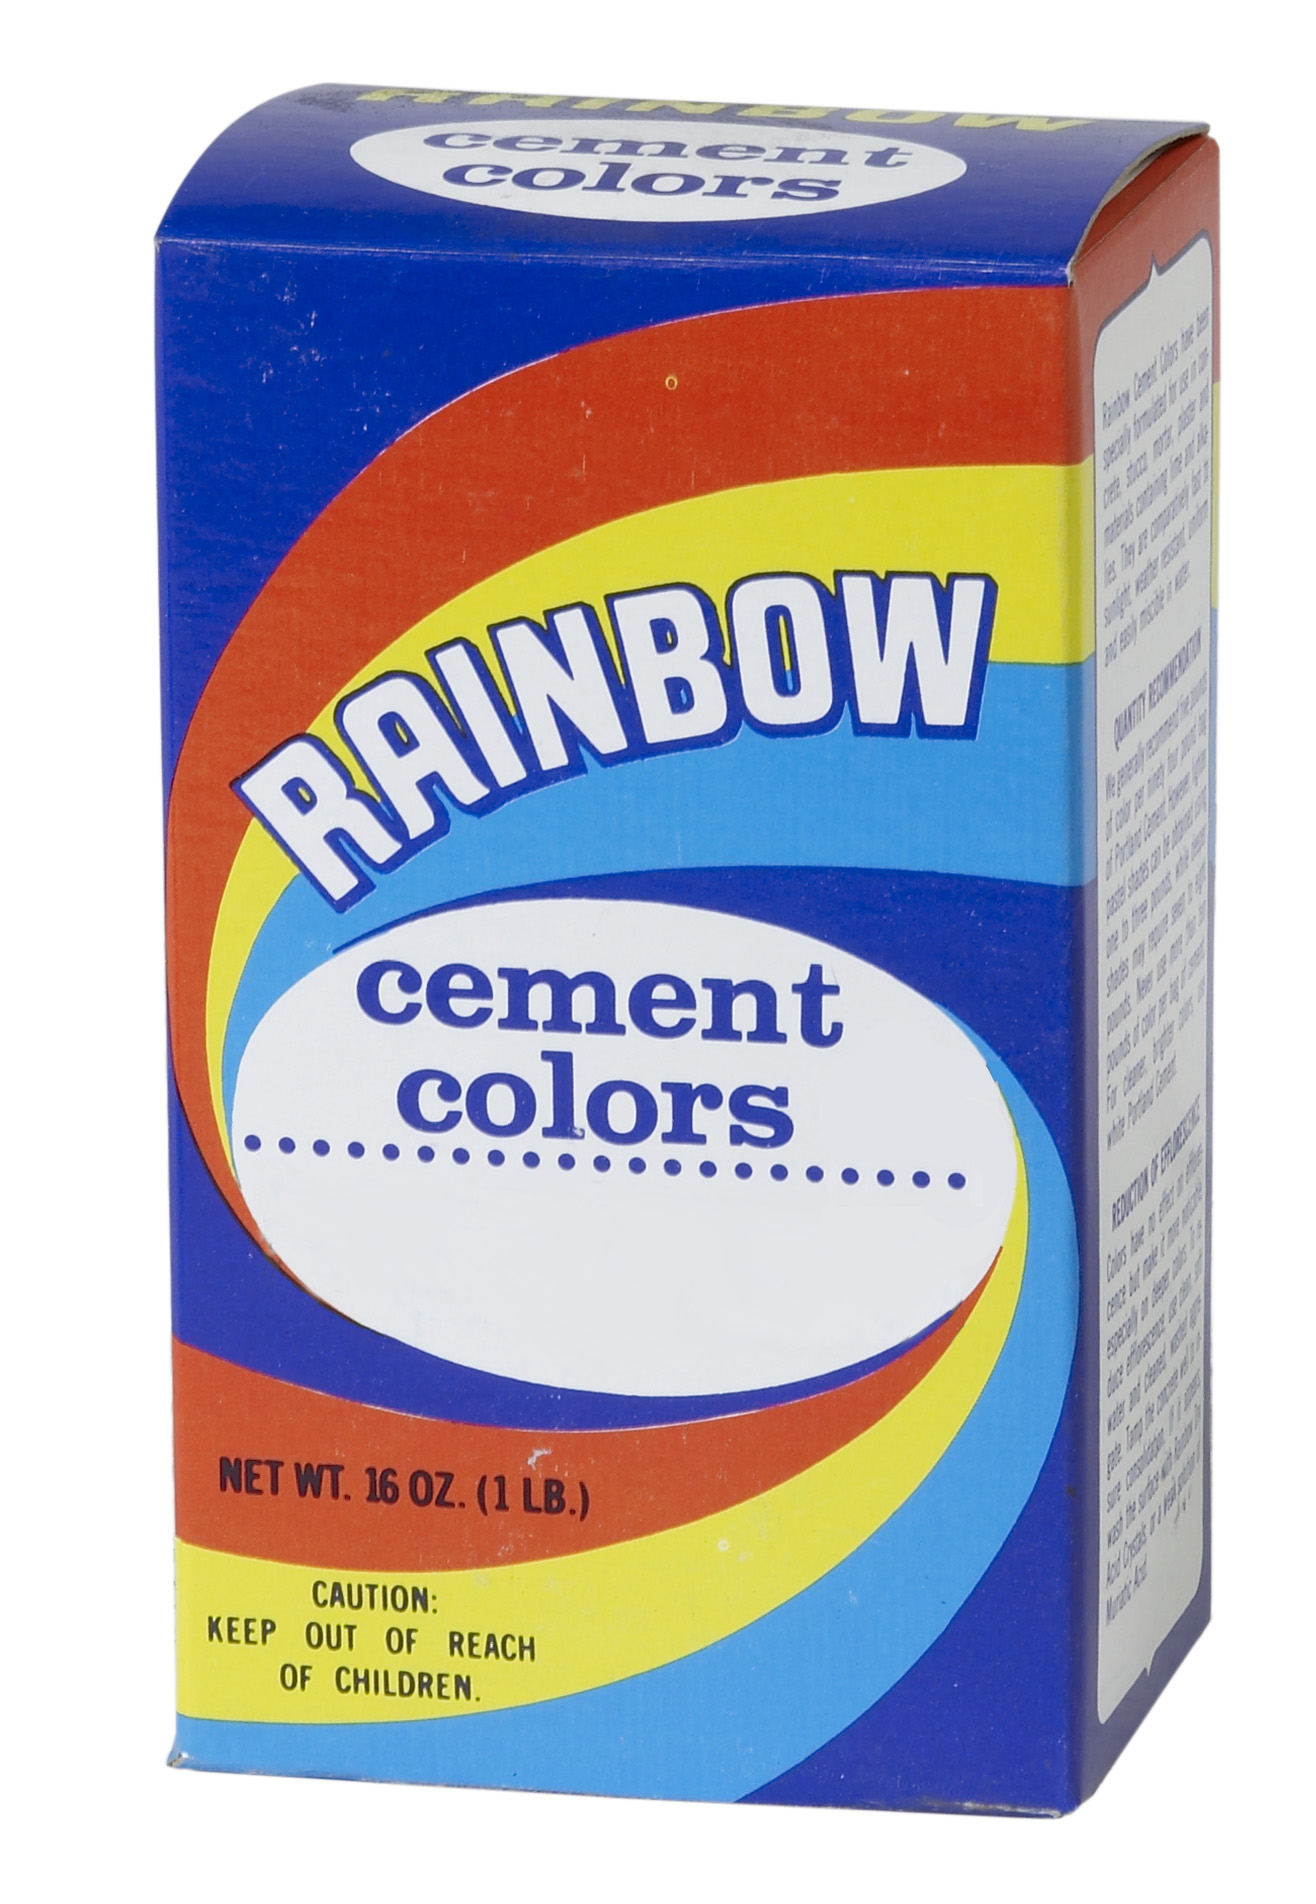 9002-0-1, 1 lb Box of Rainbow Color - LP Black, Mutual Industries